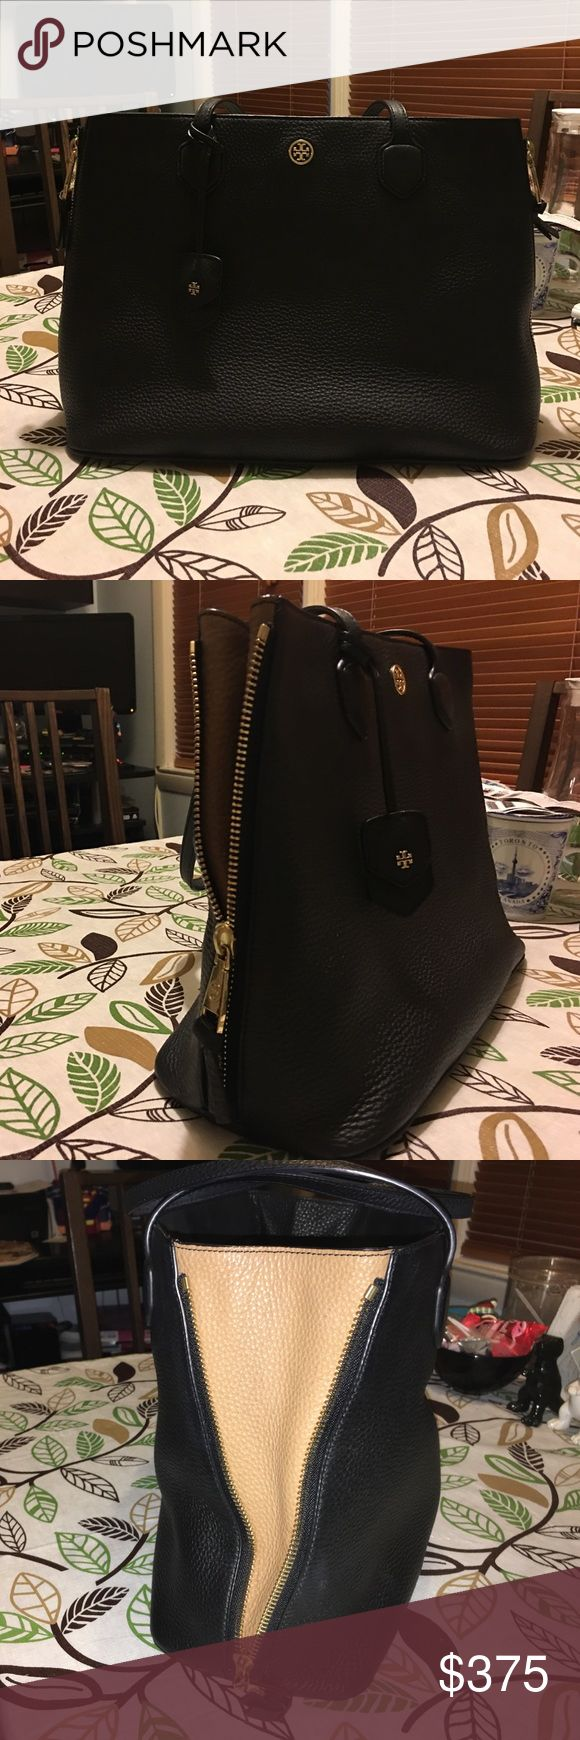 TORY BURCH ROBINSON PEBBLED LEATHER SIDE ZIP TOTE EUC *RARE* TORY BURCH ROBINSON PEBBLED LEATHER SIDE ZIP TOTE BLACK/TAN. ALL CLEAN INTERIOR, NO MARKS STAINS OR TEARS. SEE PICS FOR MORE INFO. Tory Burch Bags Totes